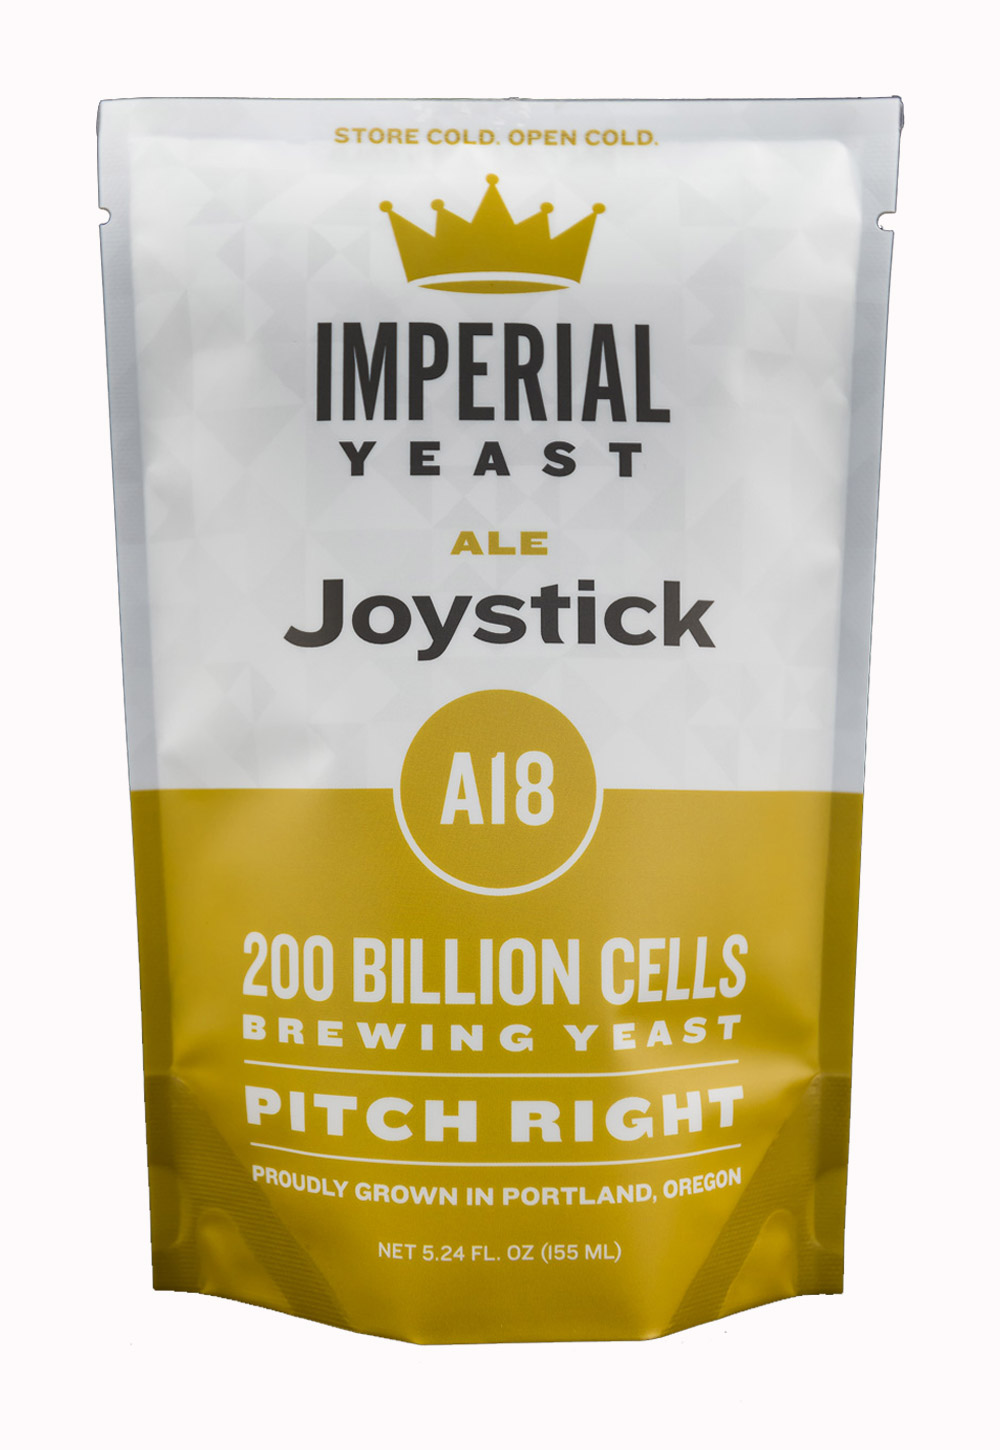 Imperial Beer Yeast, A18 Joystick-0